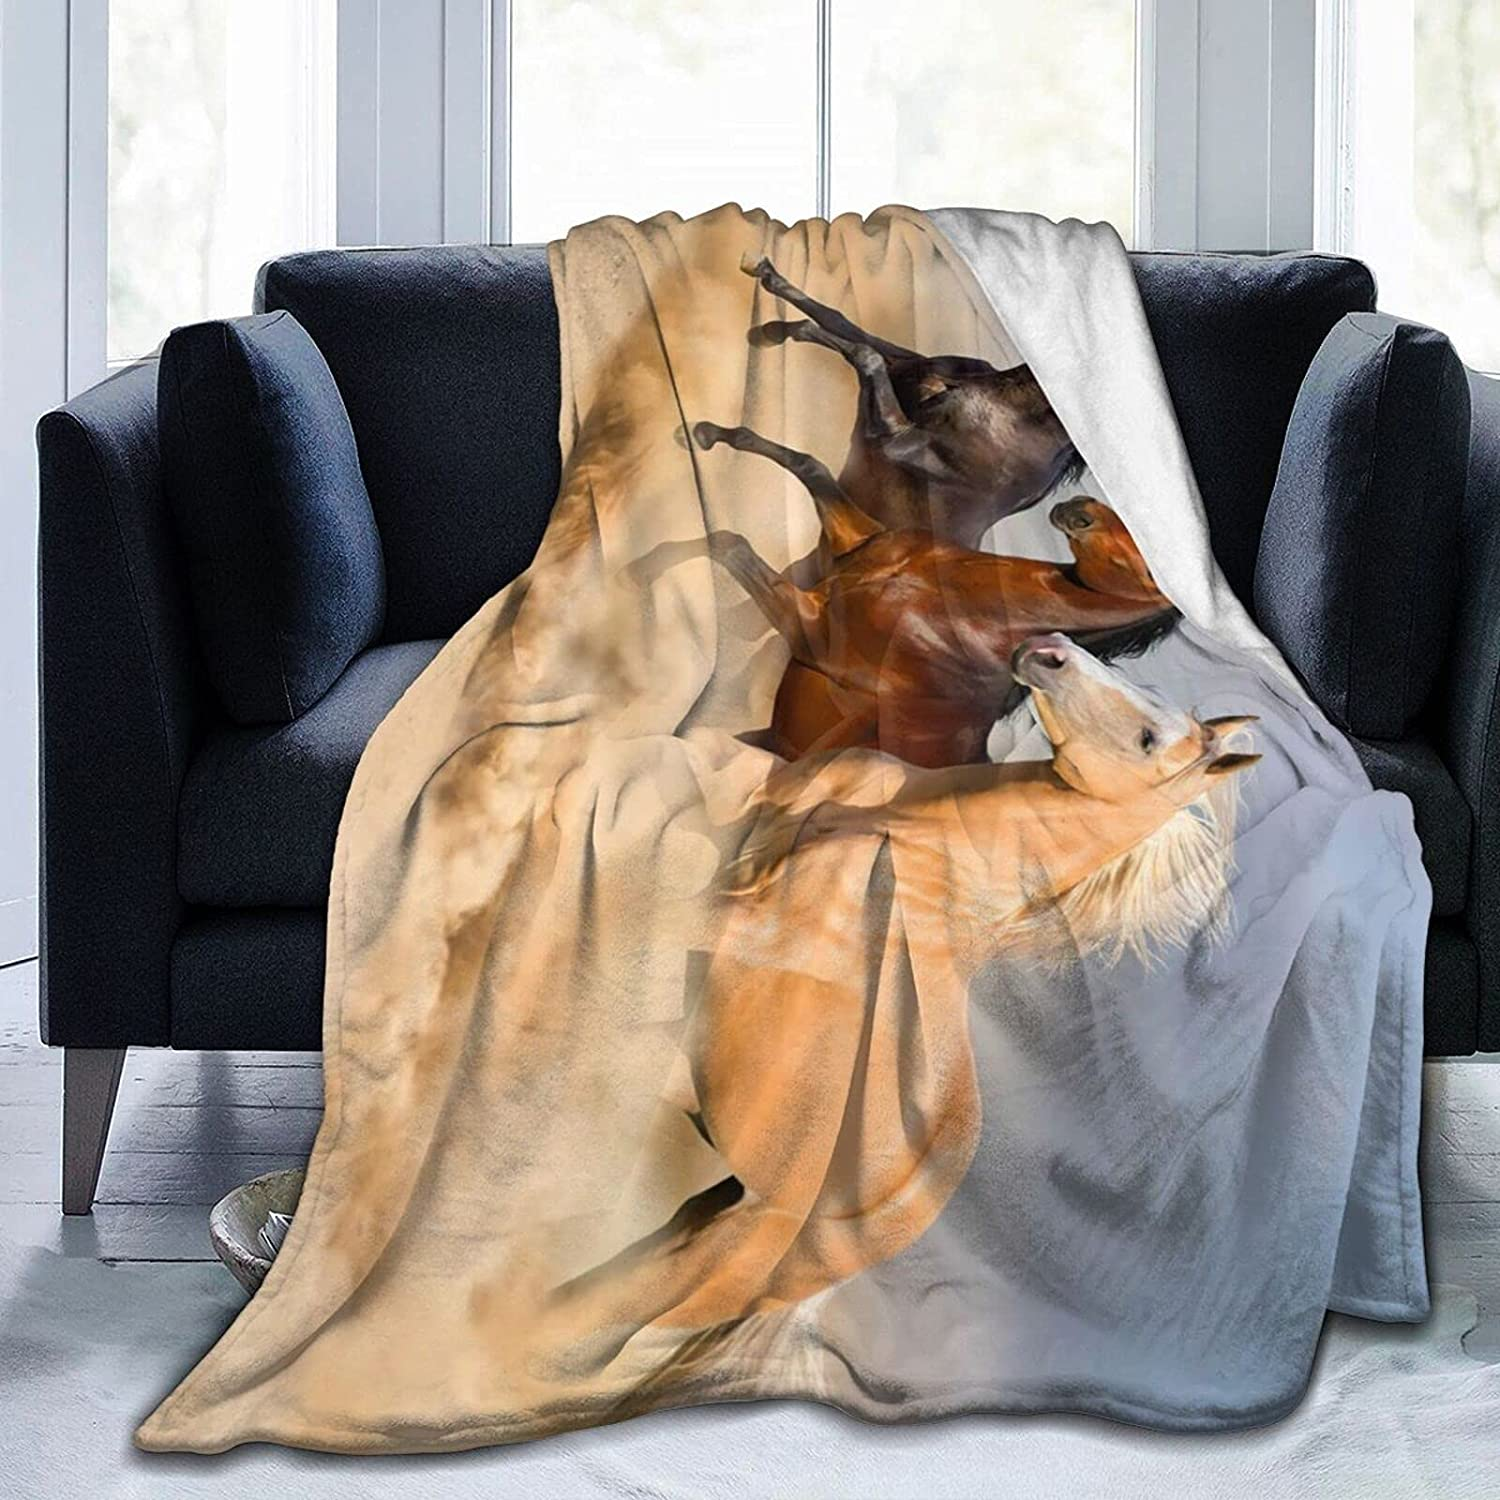 Beautiful Horse Department store wholesale Pattern Soft Blanket Decorative Throws Bedspread